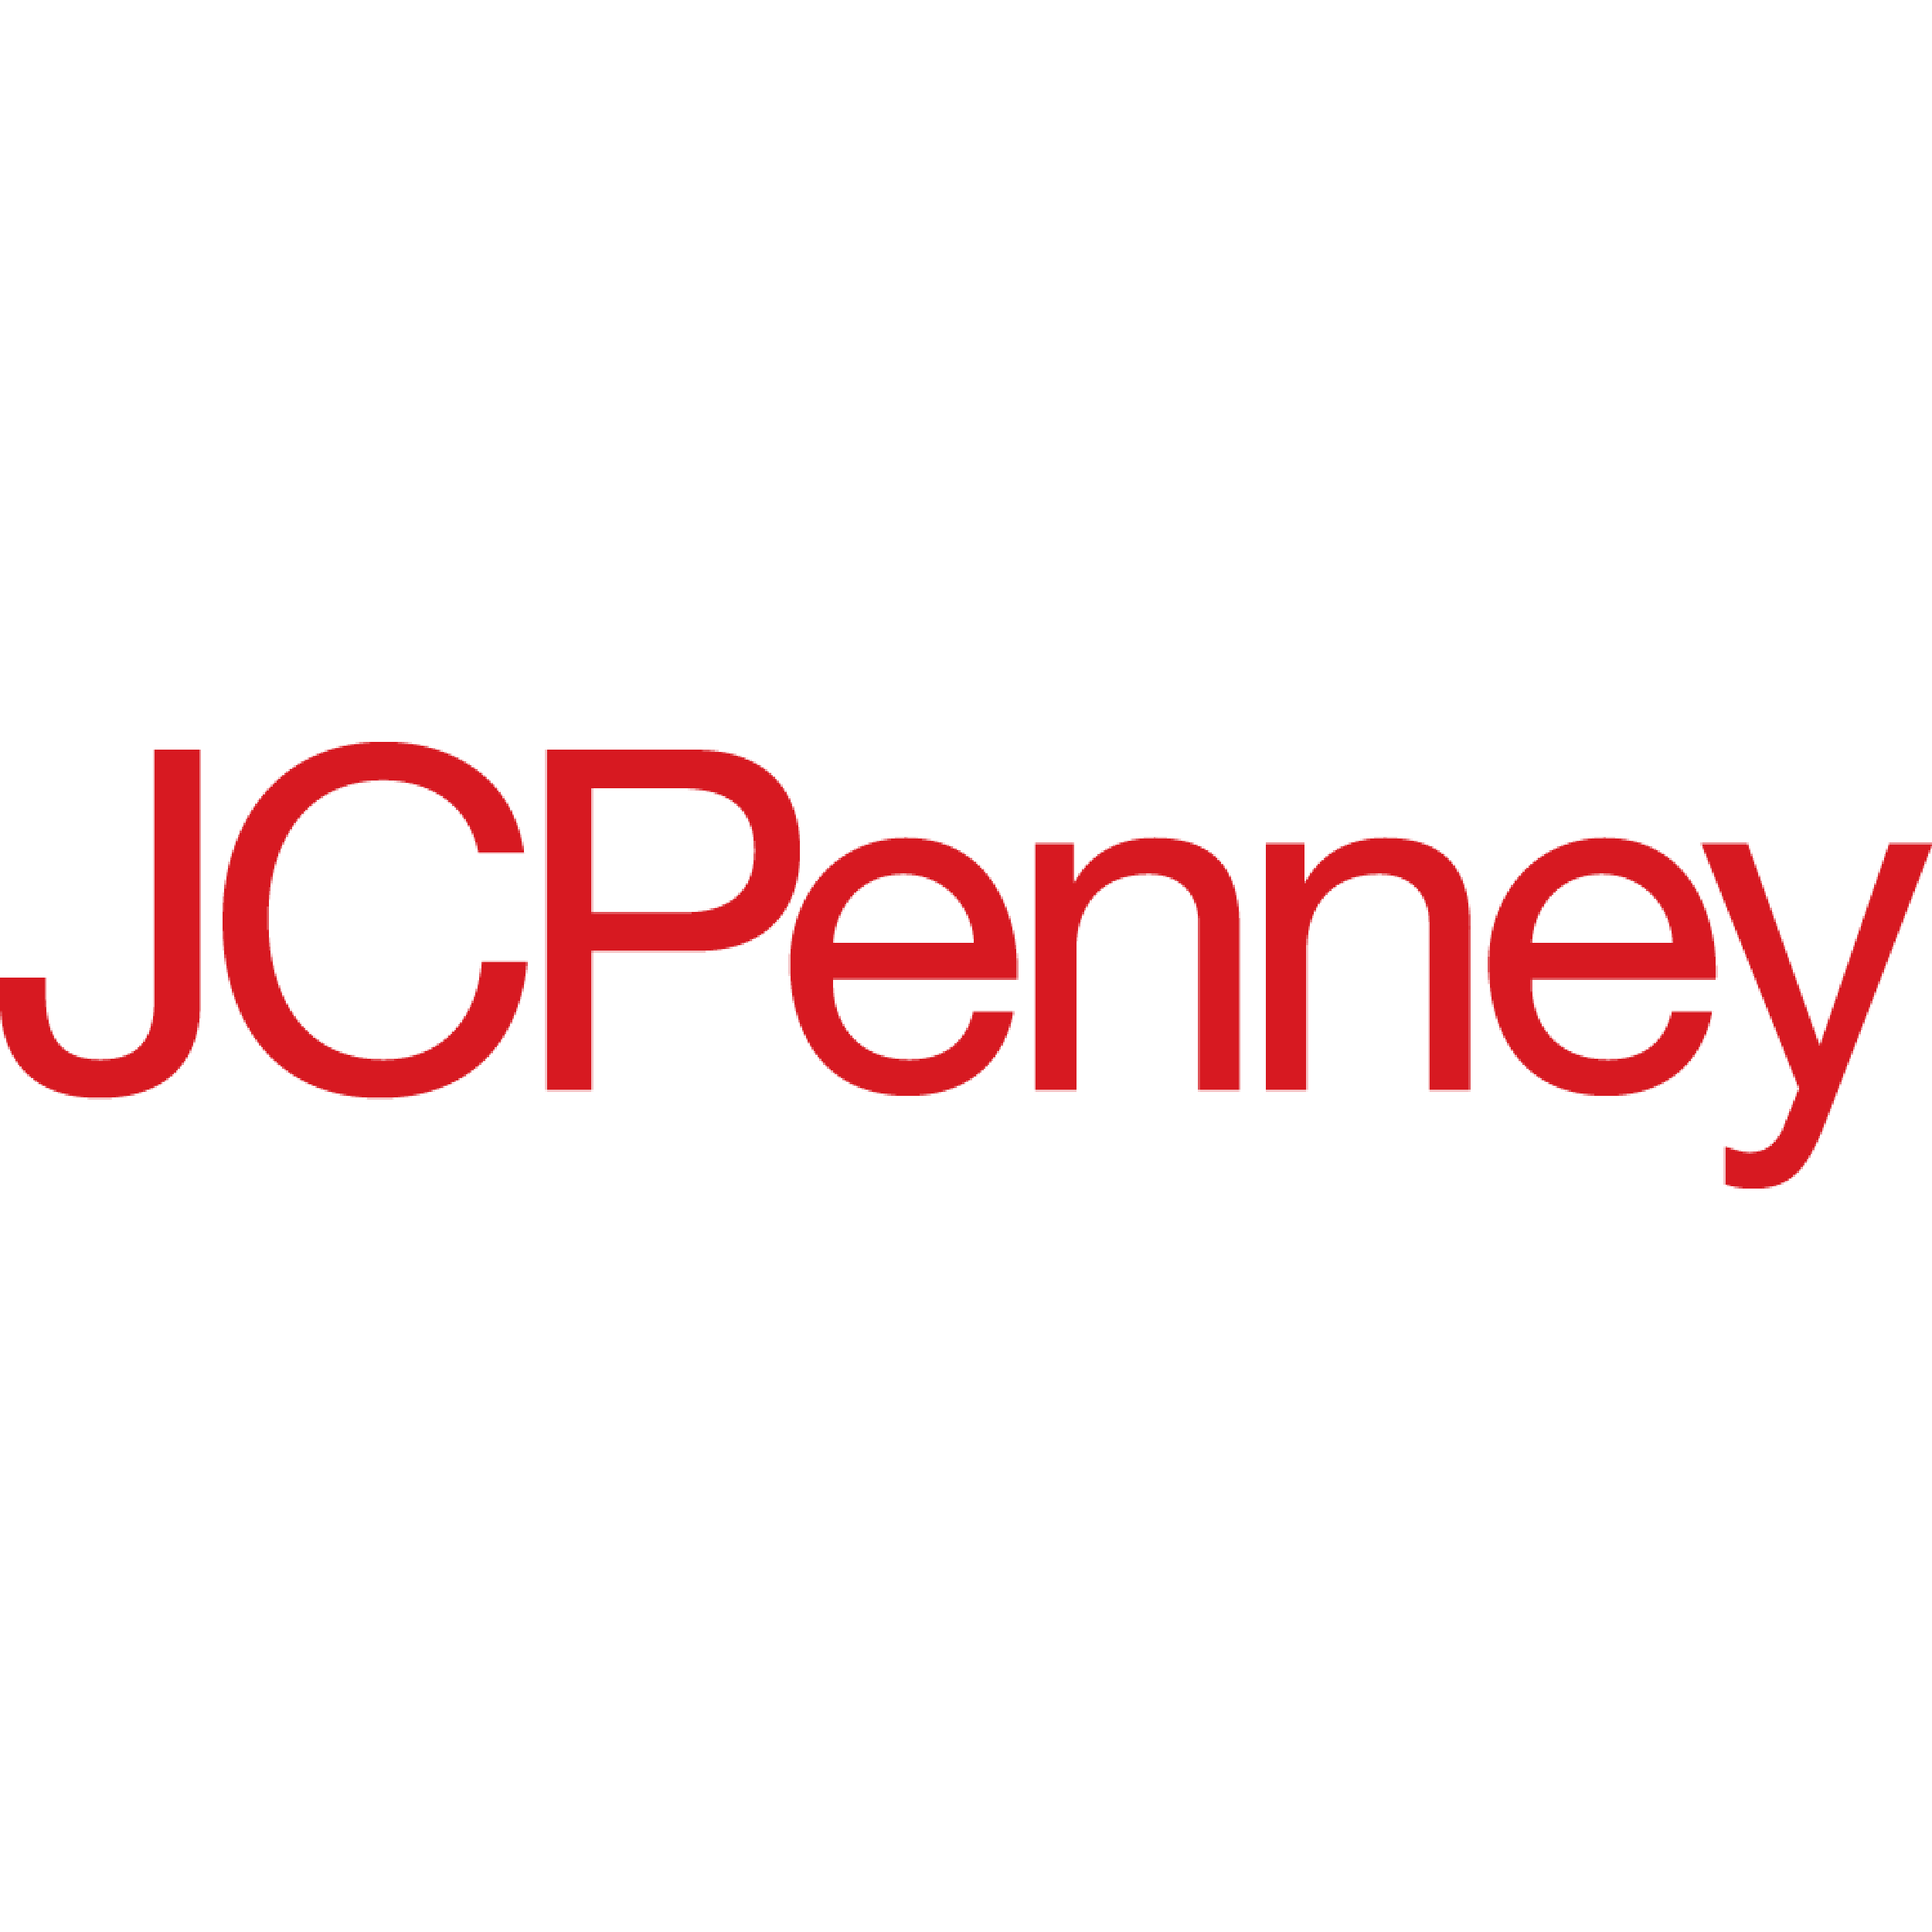 JCPenney - Butler, PA - Department Stores